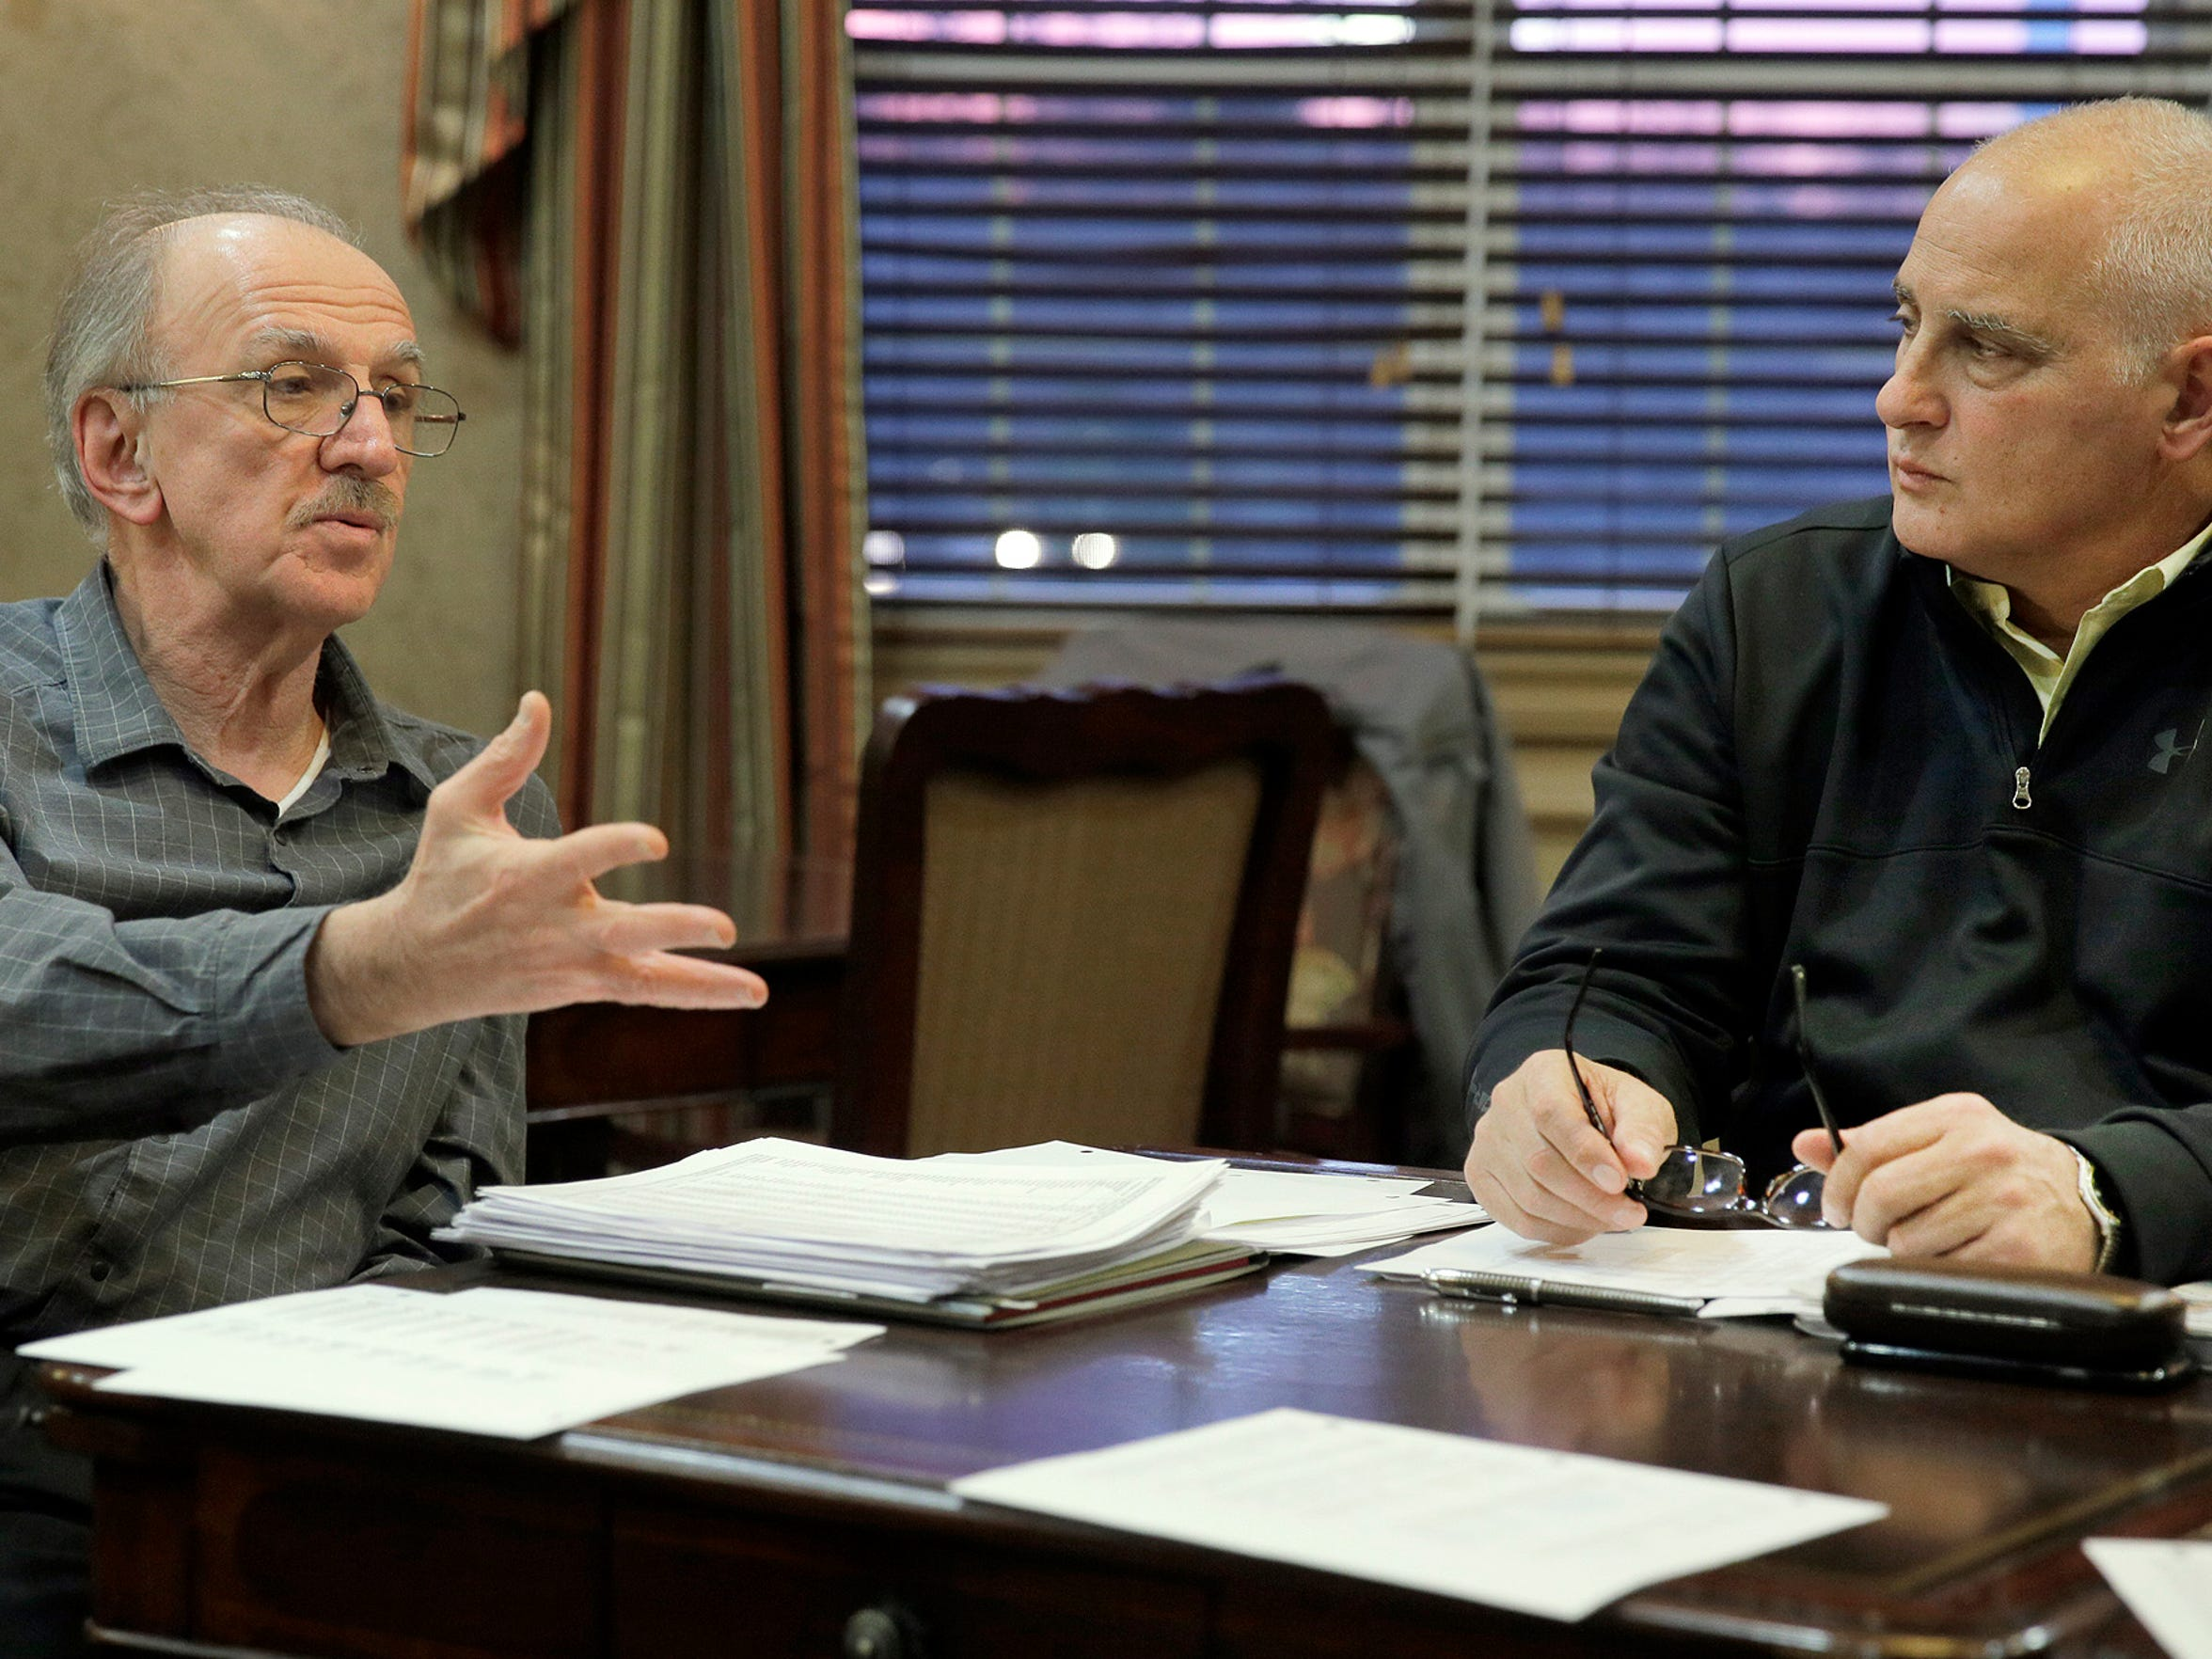 Adam Seyhan (left) and Richard Nocerino are among the group that gathered at the Equestra clubhouse in Howell Township Thursday evening, January 14, 2016, who are trying to fight back against increasing property taxes.